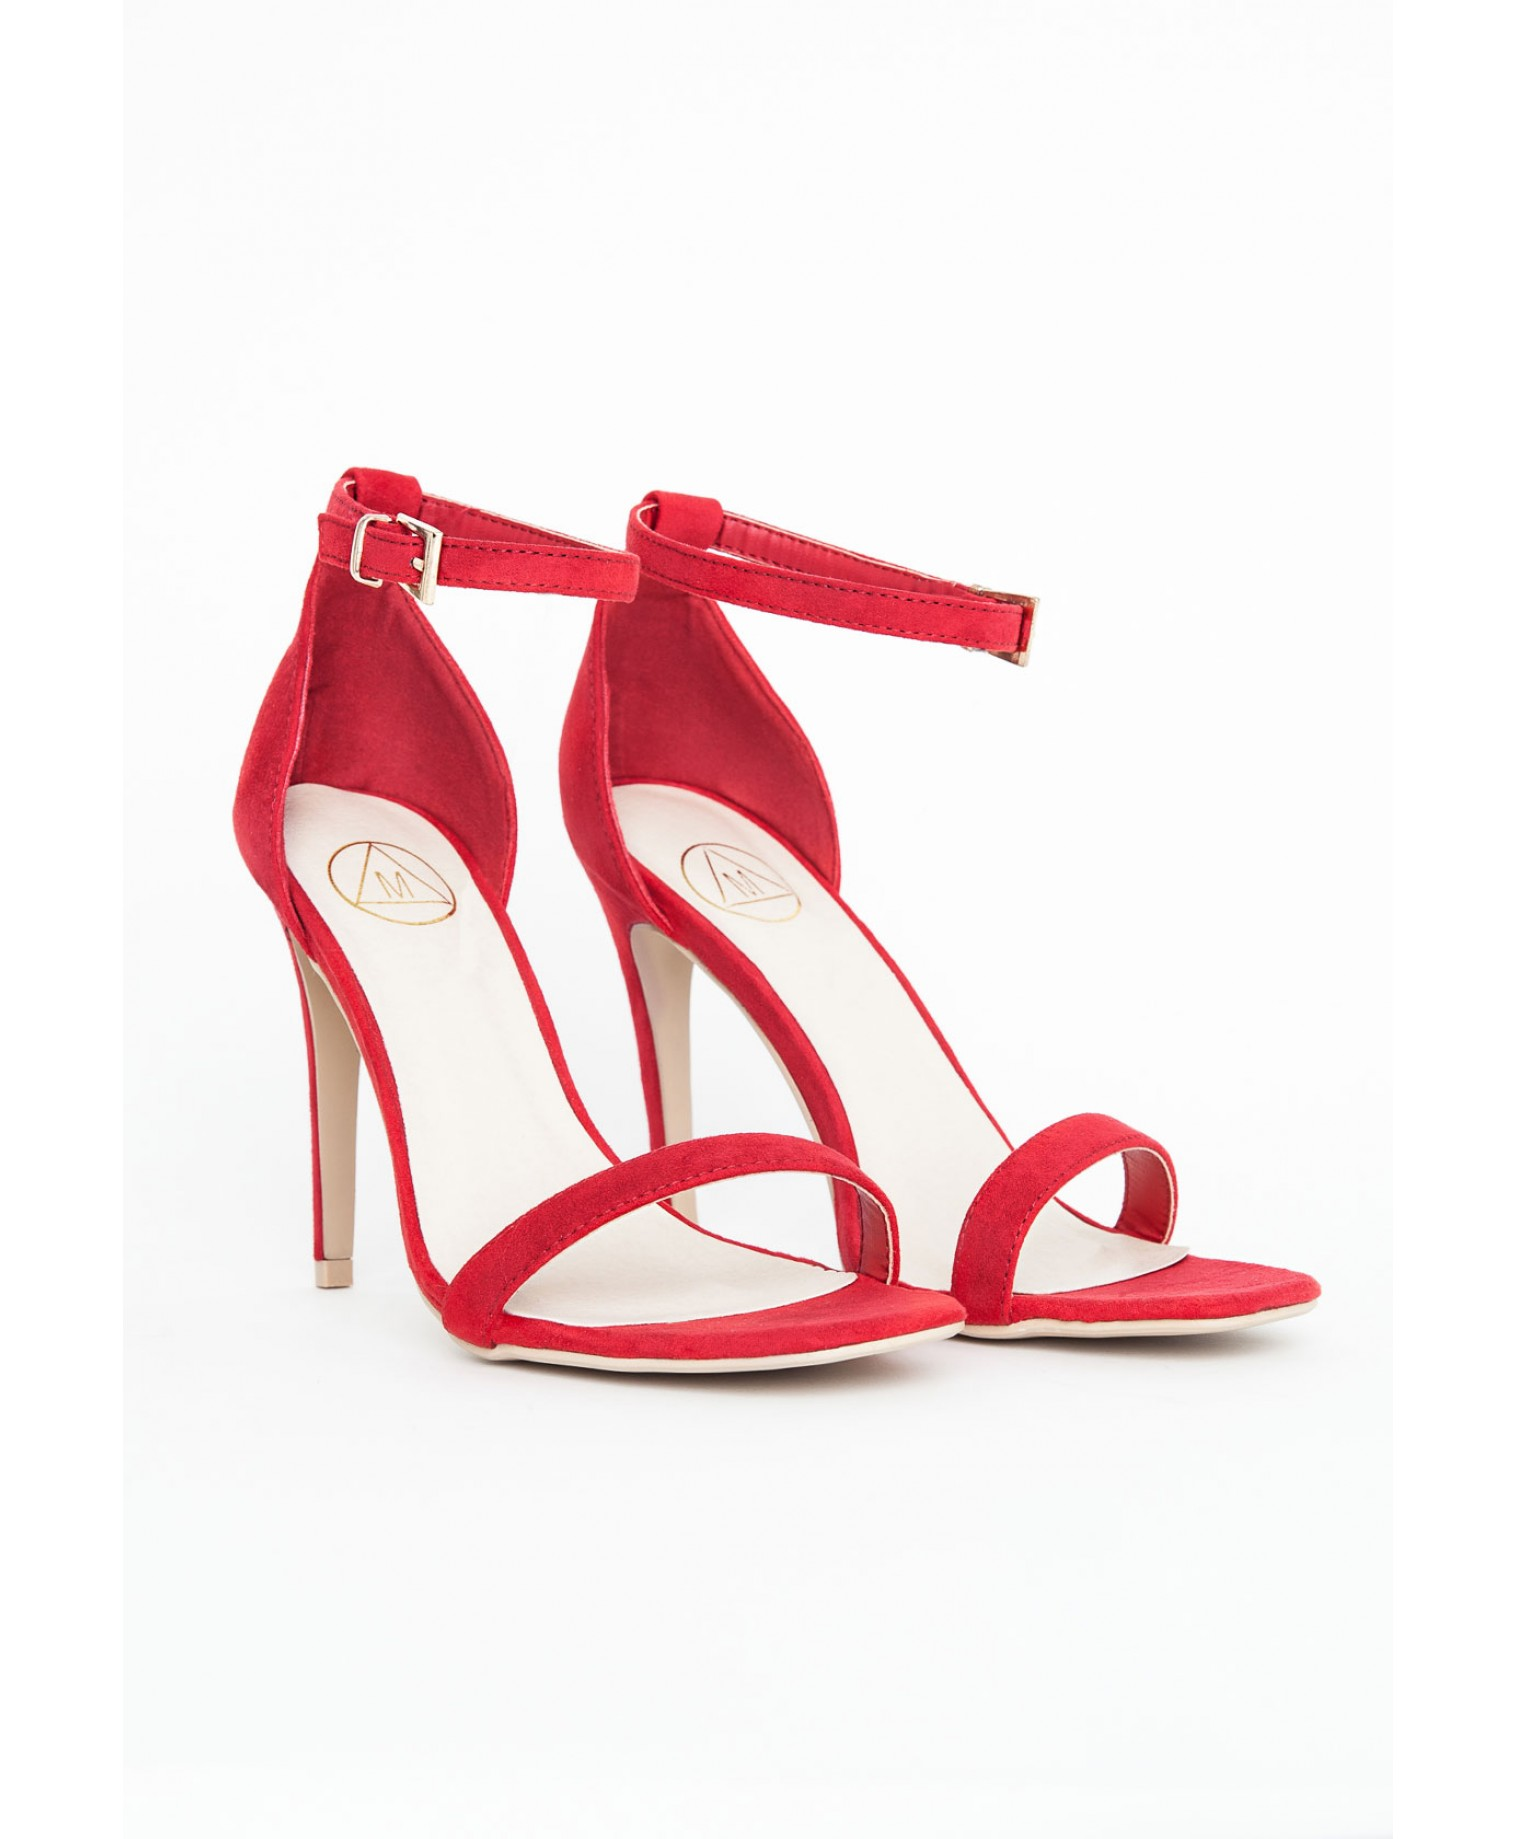 Clara suede strappy sandals in red